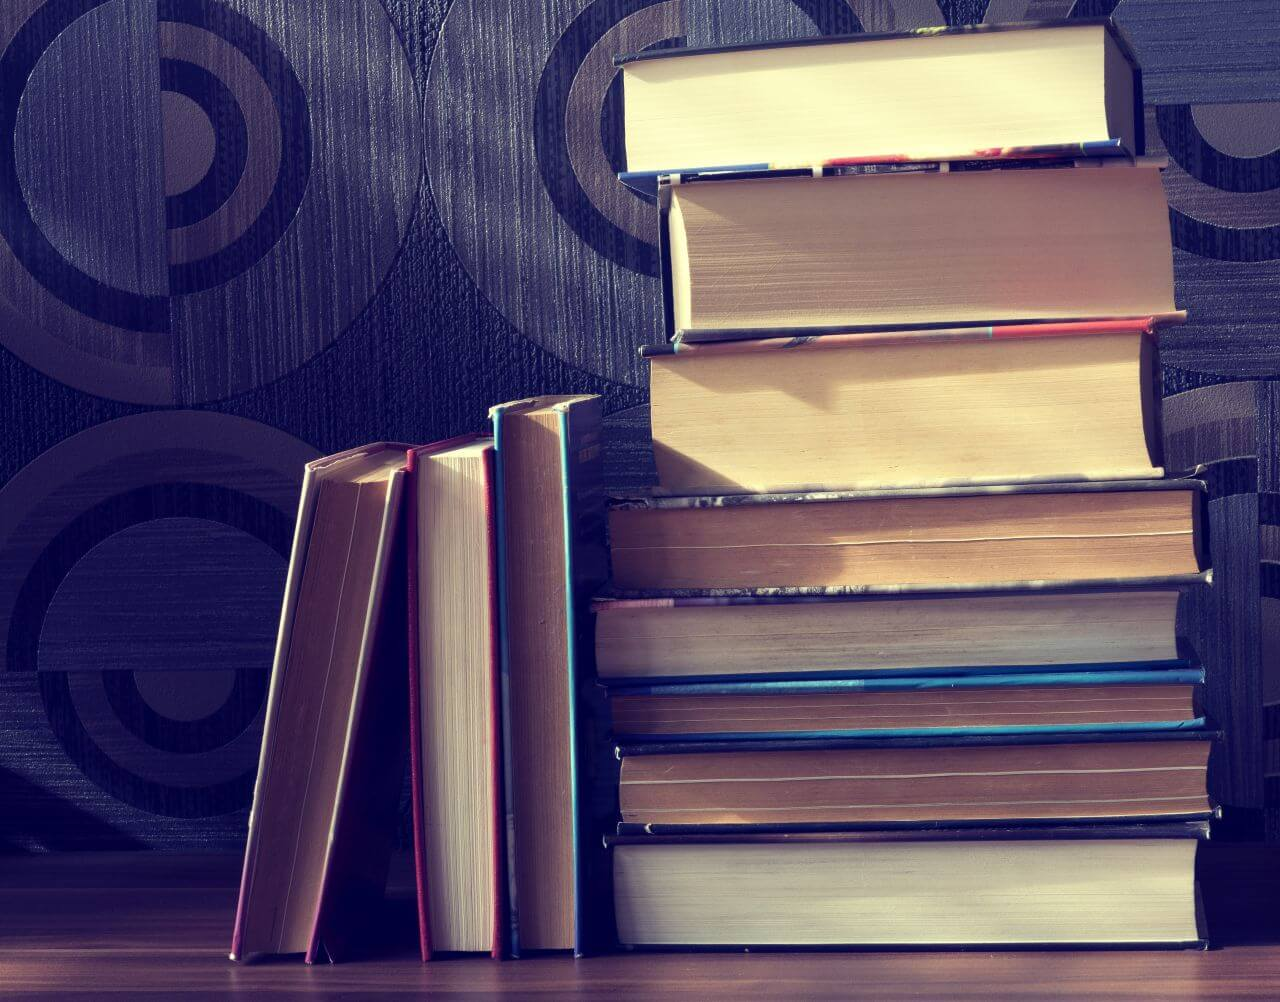 """Free photo """"Book stack"""" by  Anthony"""